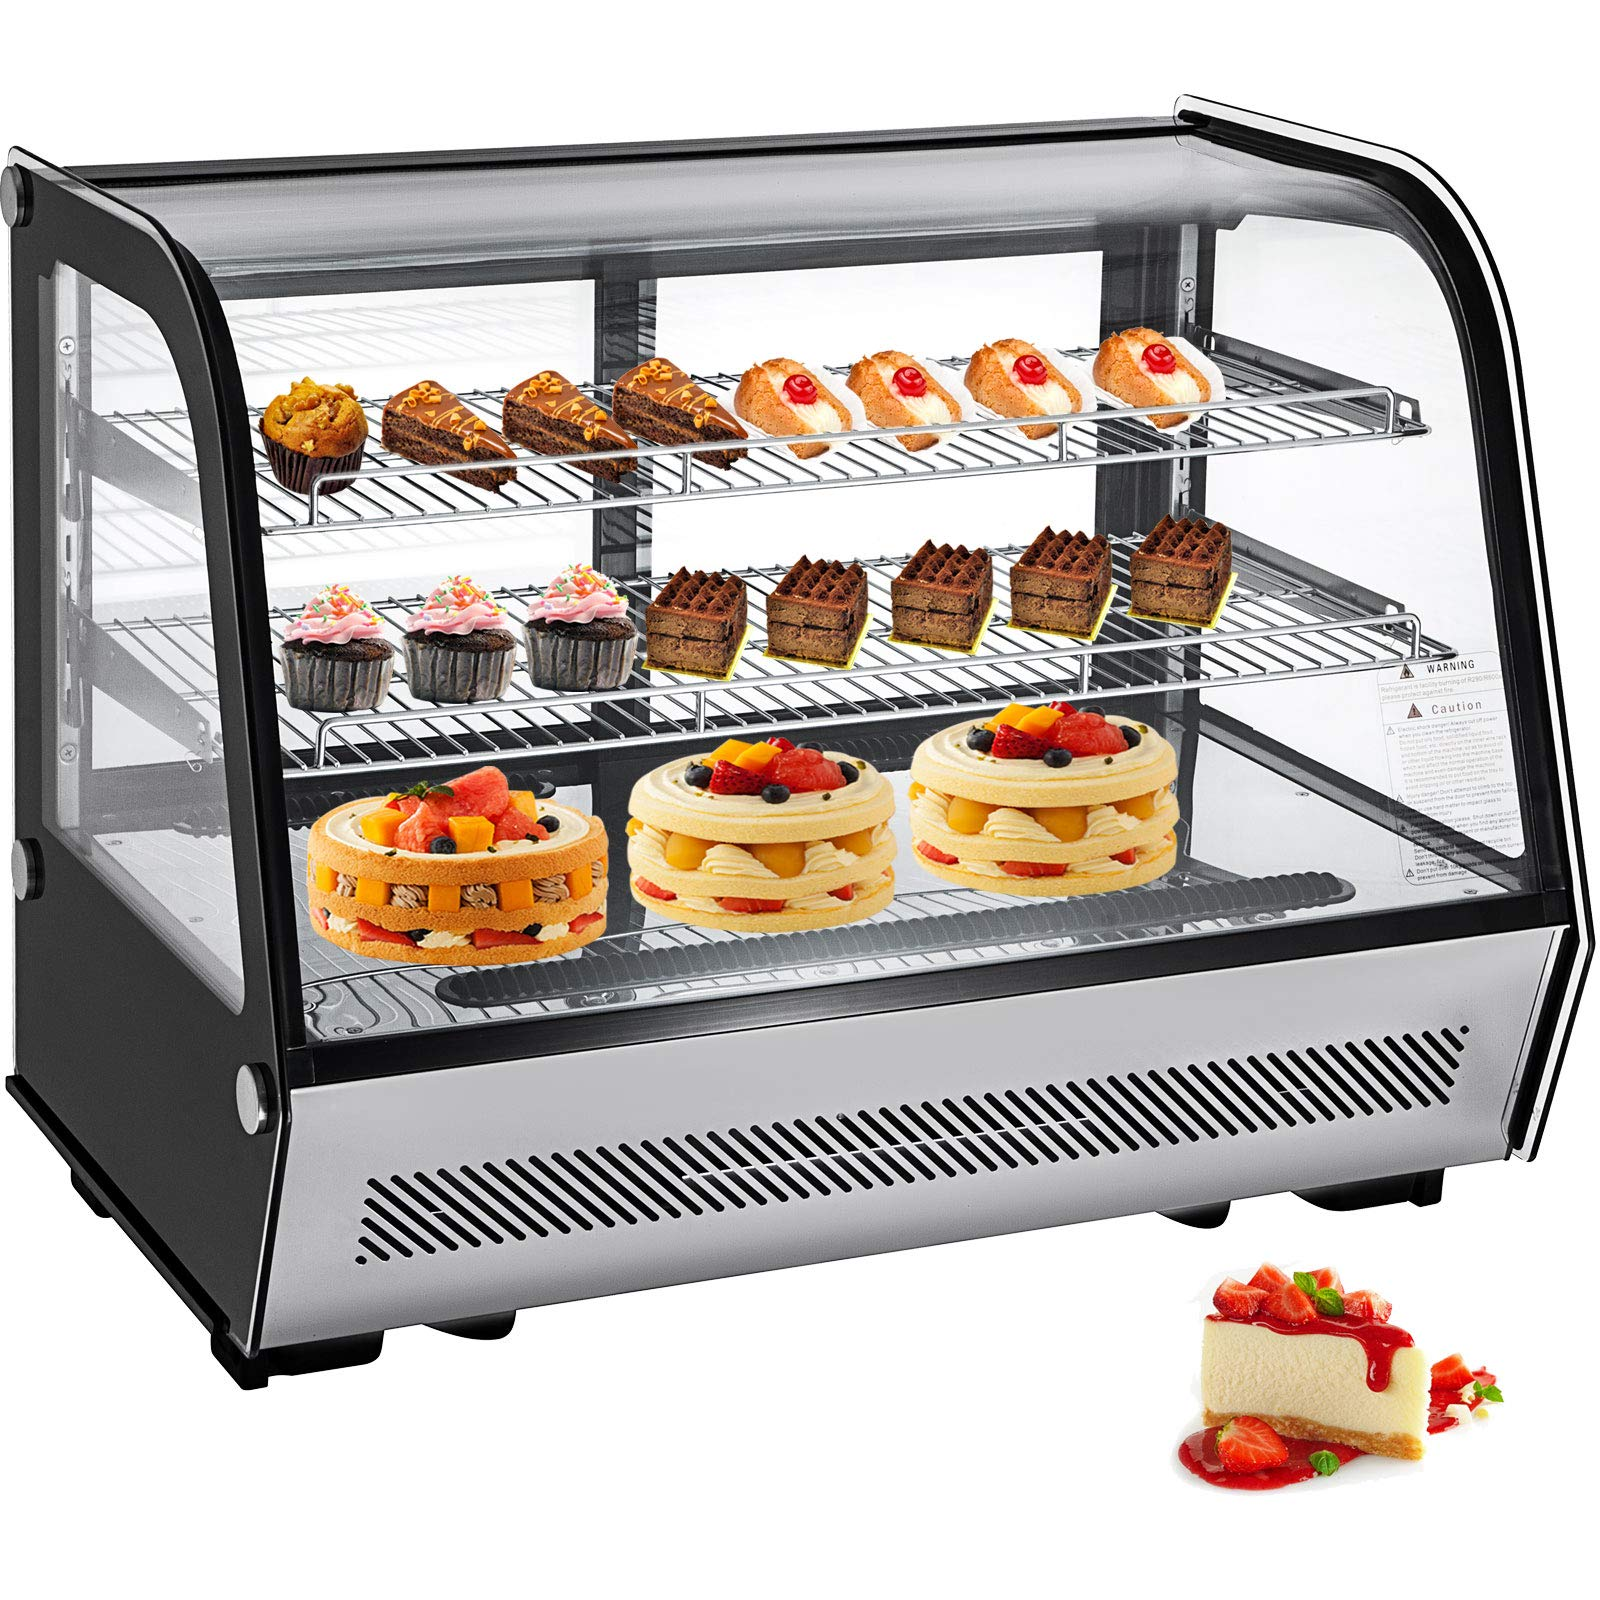 VBENLEM 5.65 cu.ft. Commercial Countertop Refrigerator Silver 160L Stainless Steel Bakery Dairy Display Cooler Case with Automatic Defrost LED Lighting Suit for Cake Roaster Shop Cafe Use